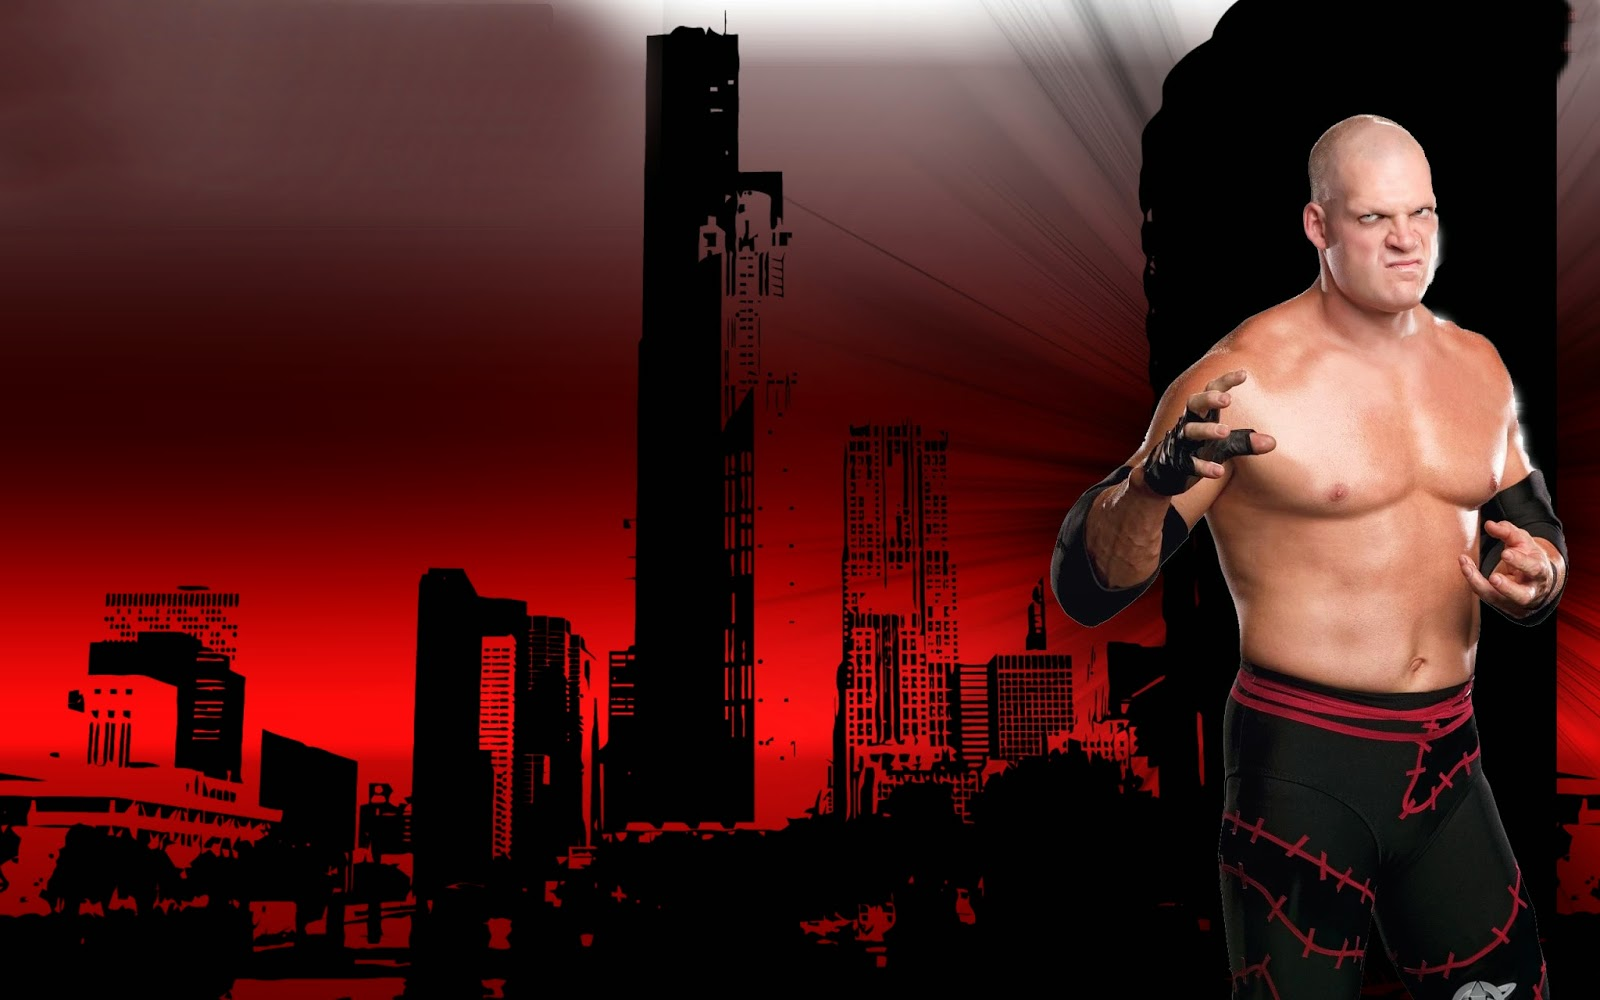 Kane hd wallpapers wwe wallpapers free for Cool wwe pictures